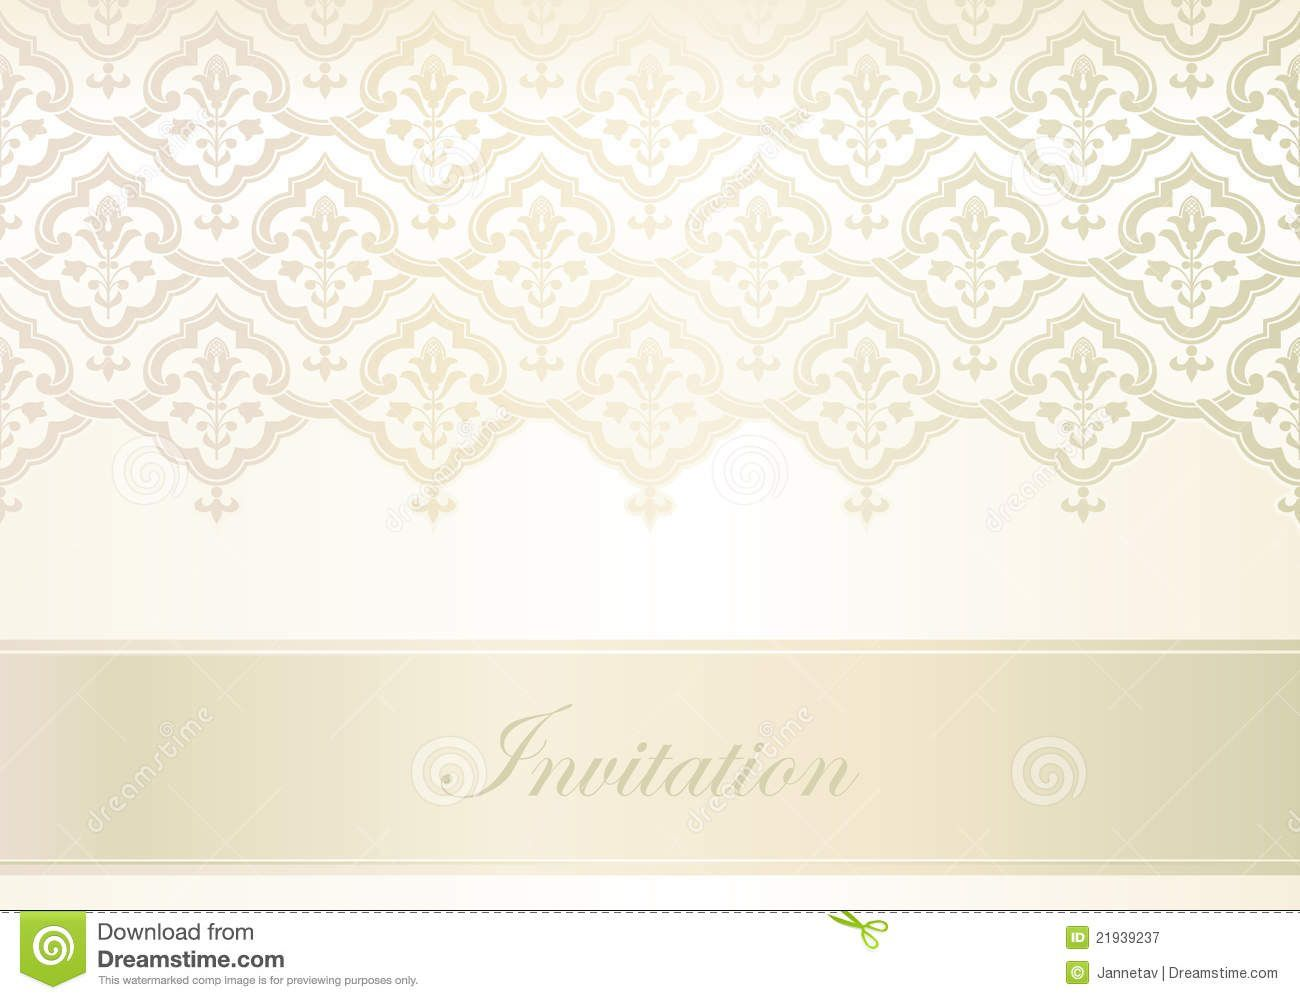 009 Astounding Free Download Invitation Card Format High Definition  Birthday Tamil Marriage In WordFull